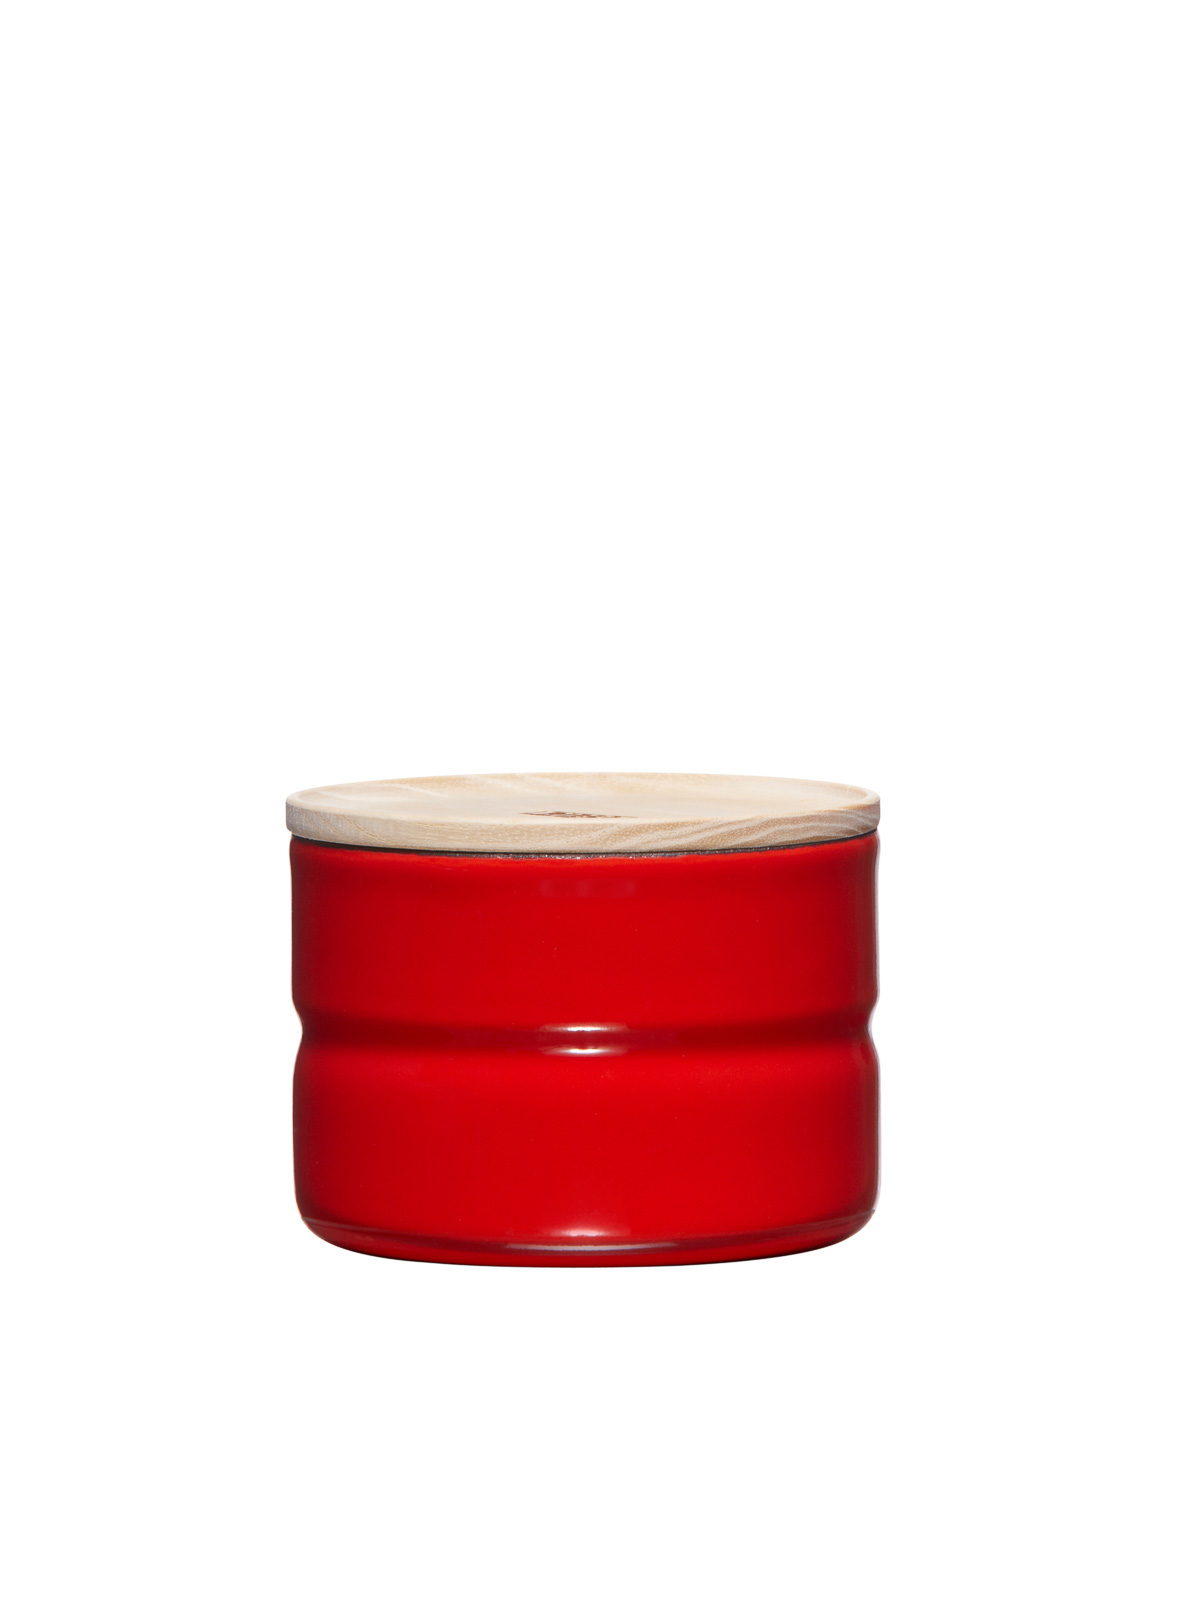 storage container red 230 ml (2171-213)